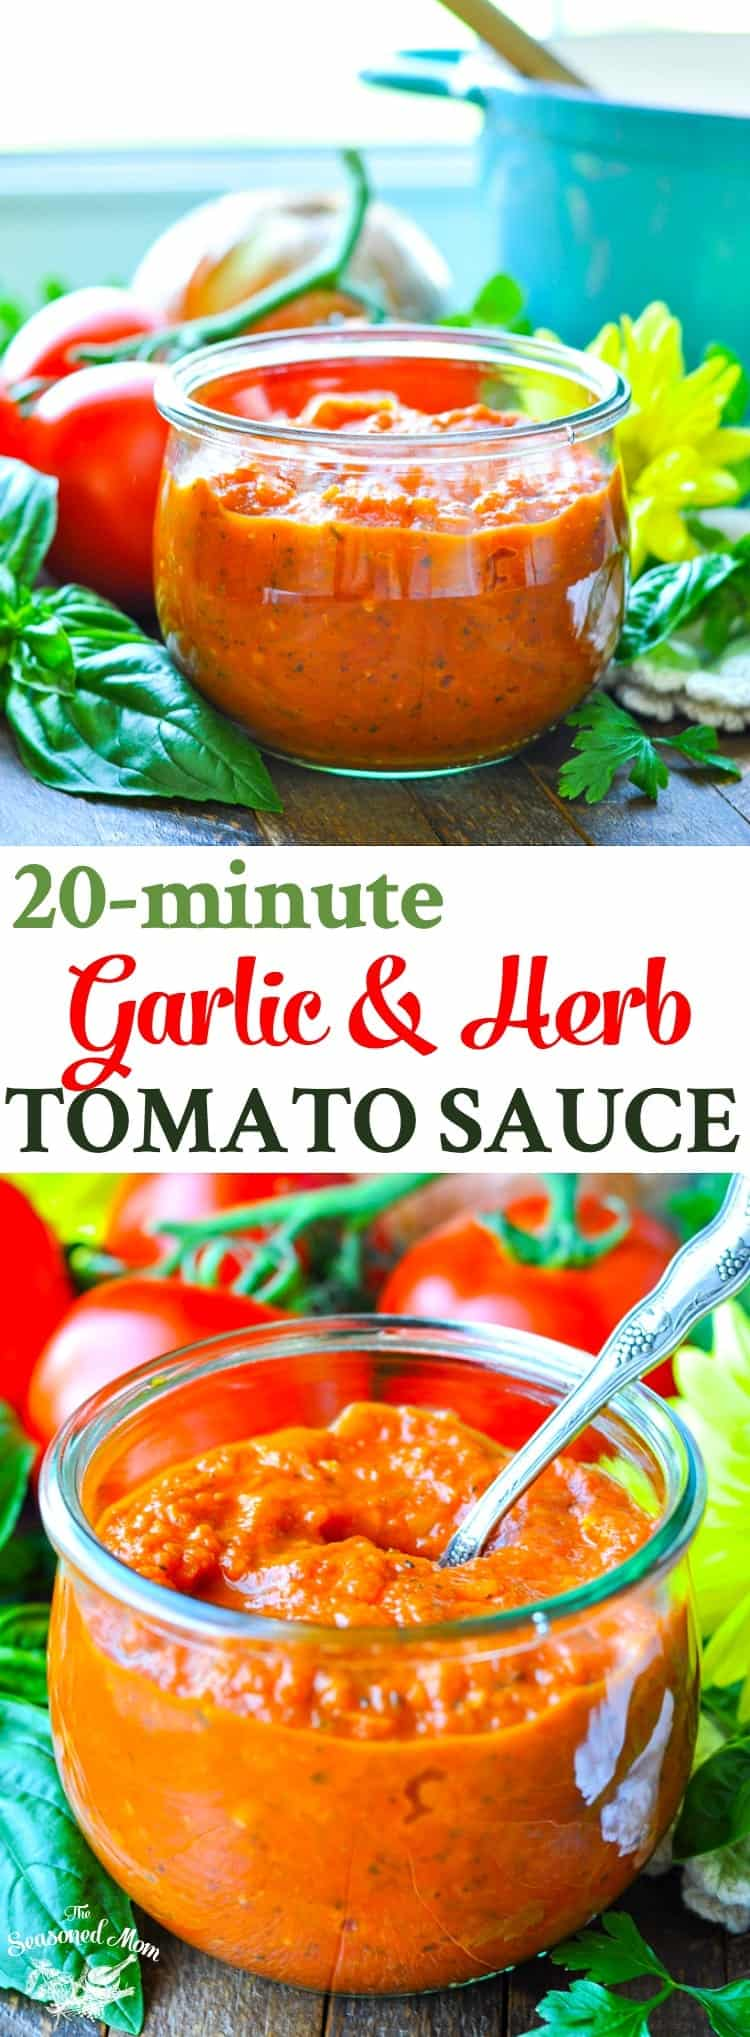 how to clean tomato sause stsins